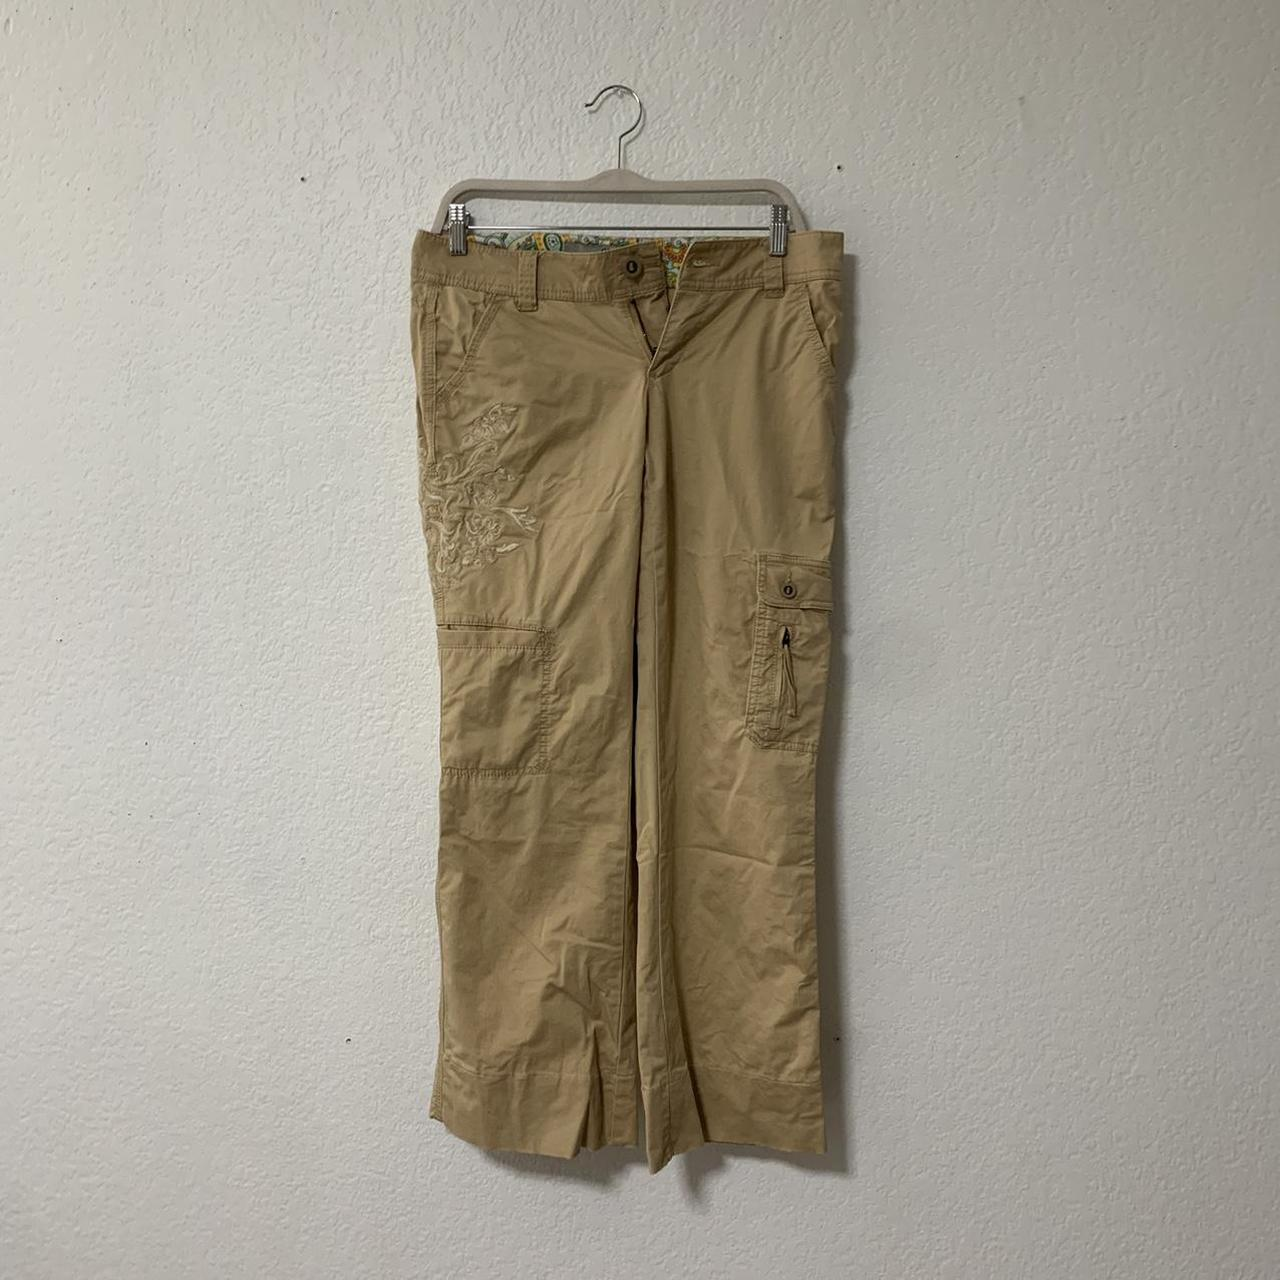 Product Image 1 - Guess cargo pants ! I